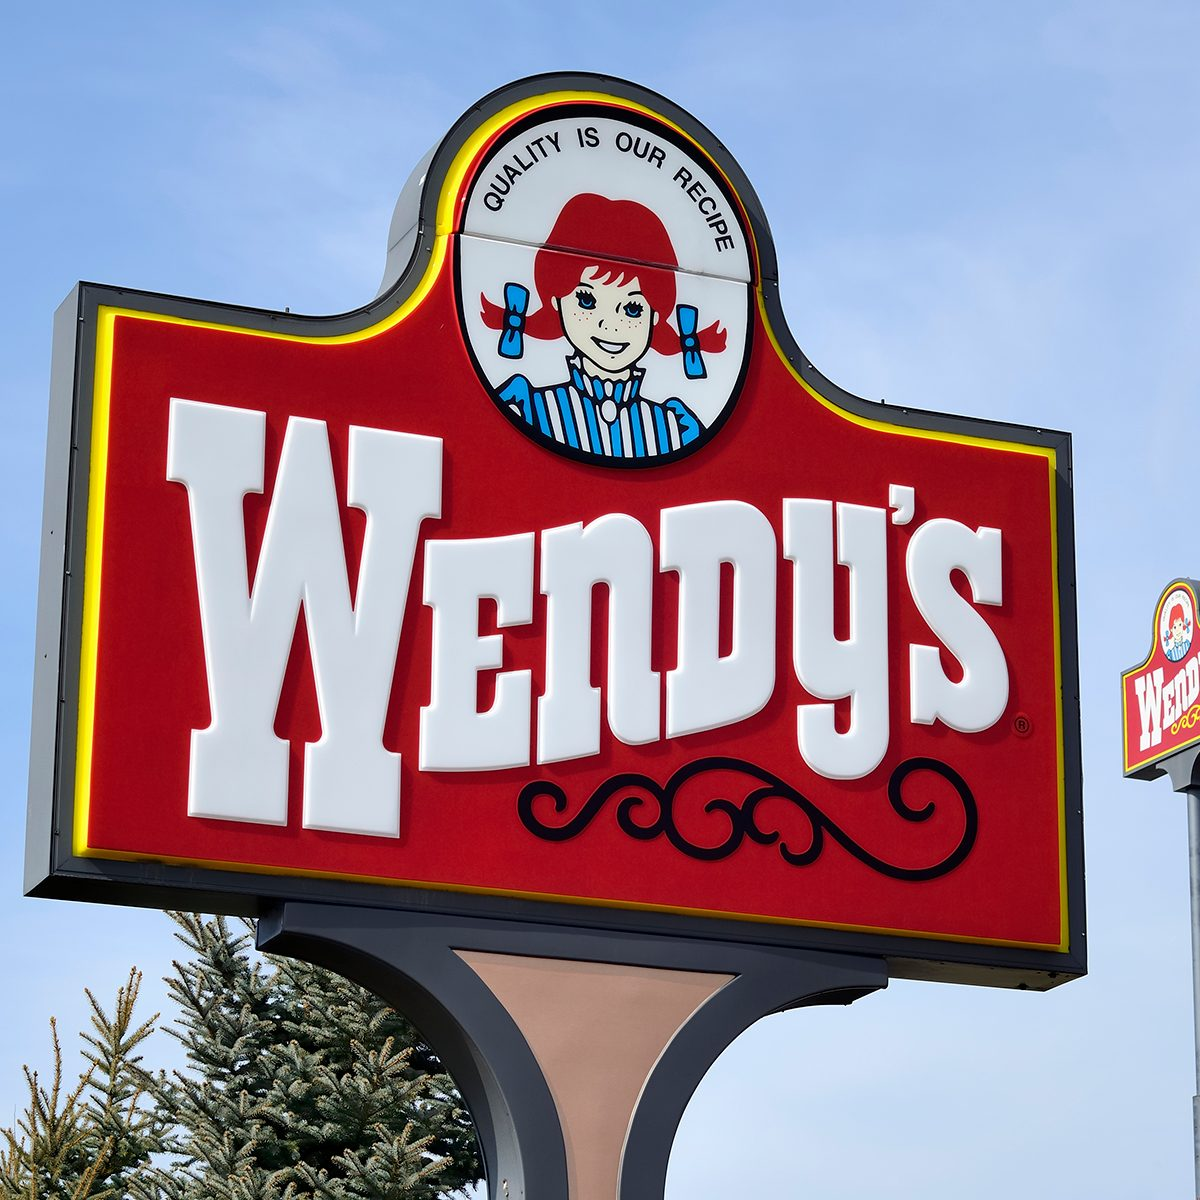 """""""Clio, Michigan, USA - March 7, 2012: The Wendy's location in Clio, Michigan. Founded in 1969 by Dave Thomas, Wendy's is a chain of fast food restaurants with over 6,600 locations in the US and abroad."""""""